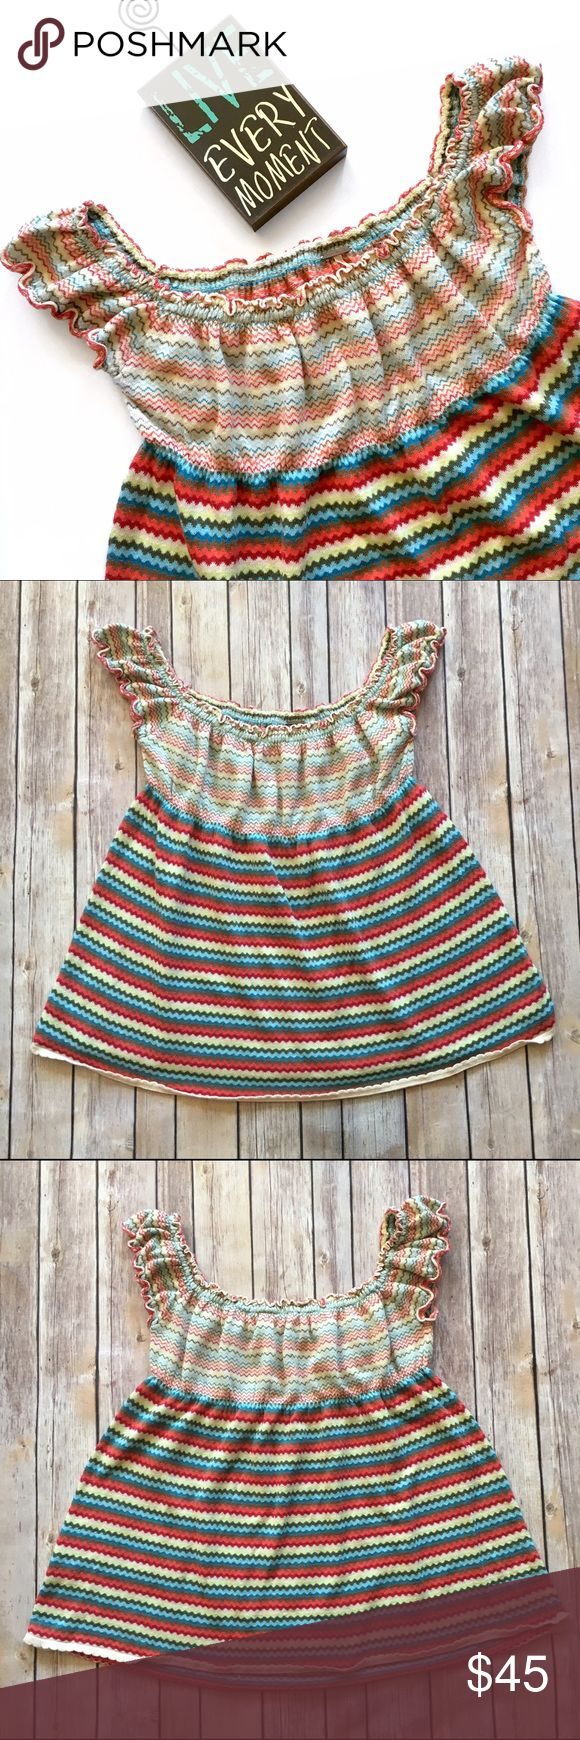 Free People Smocked Multicolored Zigzag Stripe Top Adorable boho chic smocked babydoll top! Multicolor zigzag stripes. Would look cute worn regular or off the shoulder! 2 teeny tiny pulls (last pic) otherwise excellent pre-loved condition!   🚫no trades 🚫no modeling ✅dog friendly/🚭smoke free home ✅reasonable offers ✅bundle & save! Free People Tops Blouses